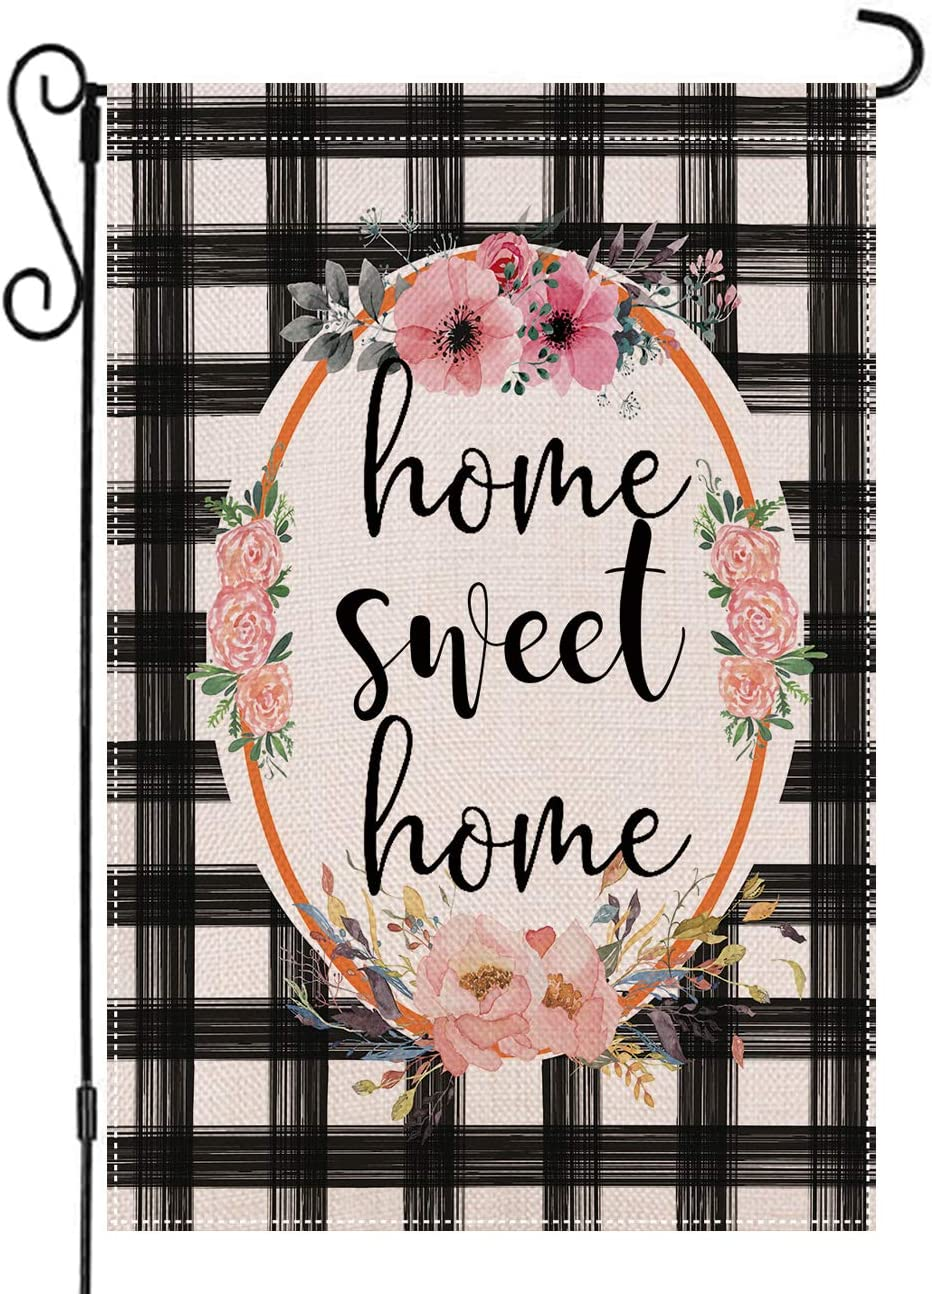 AUOIKK Home Sweet Home Garden Flag Flowers Wreath Garden Decoration Vertical Double Sided 12.5 x 18 Inch, Farmhouse Flag Watercolor Buffalo Check Plaid Sign Yard Patio Lawn Banner Outdoor Decoration